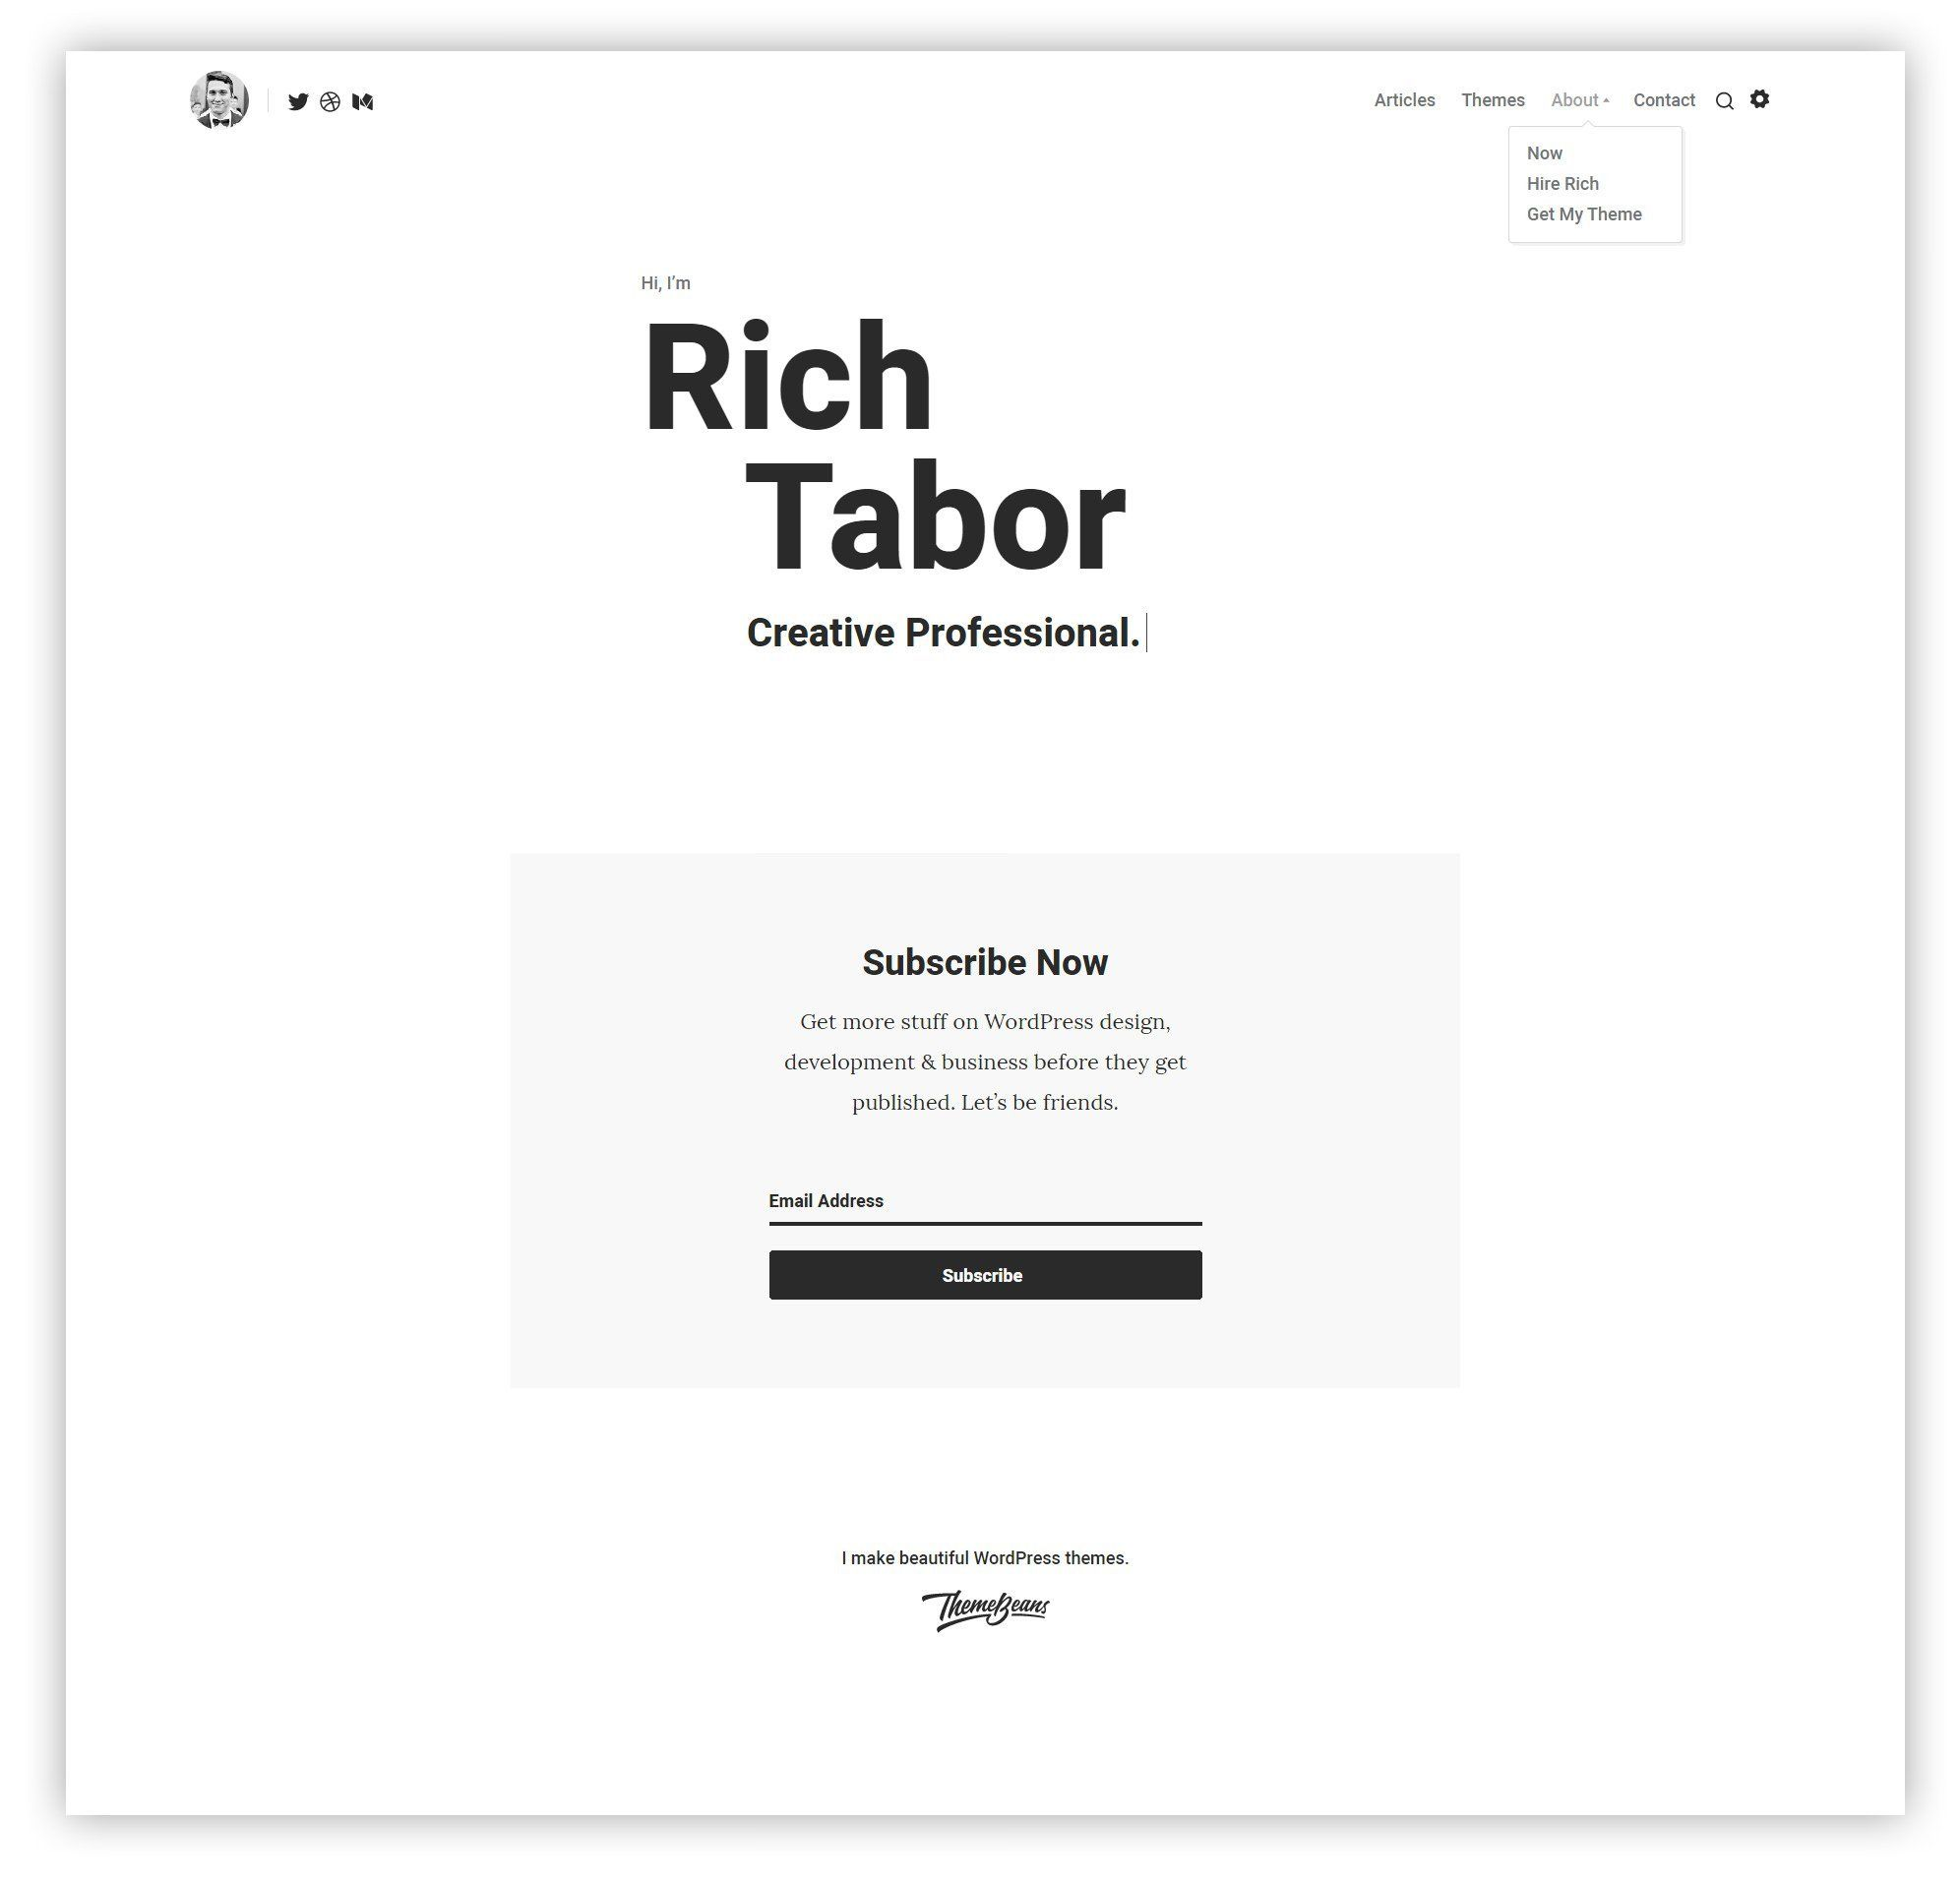 Tabor WordPress Theme